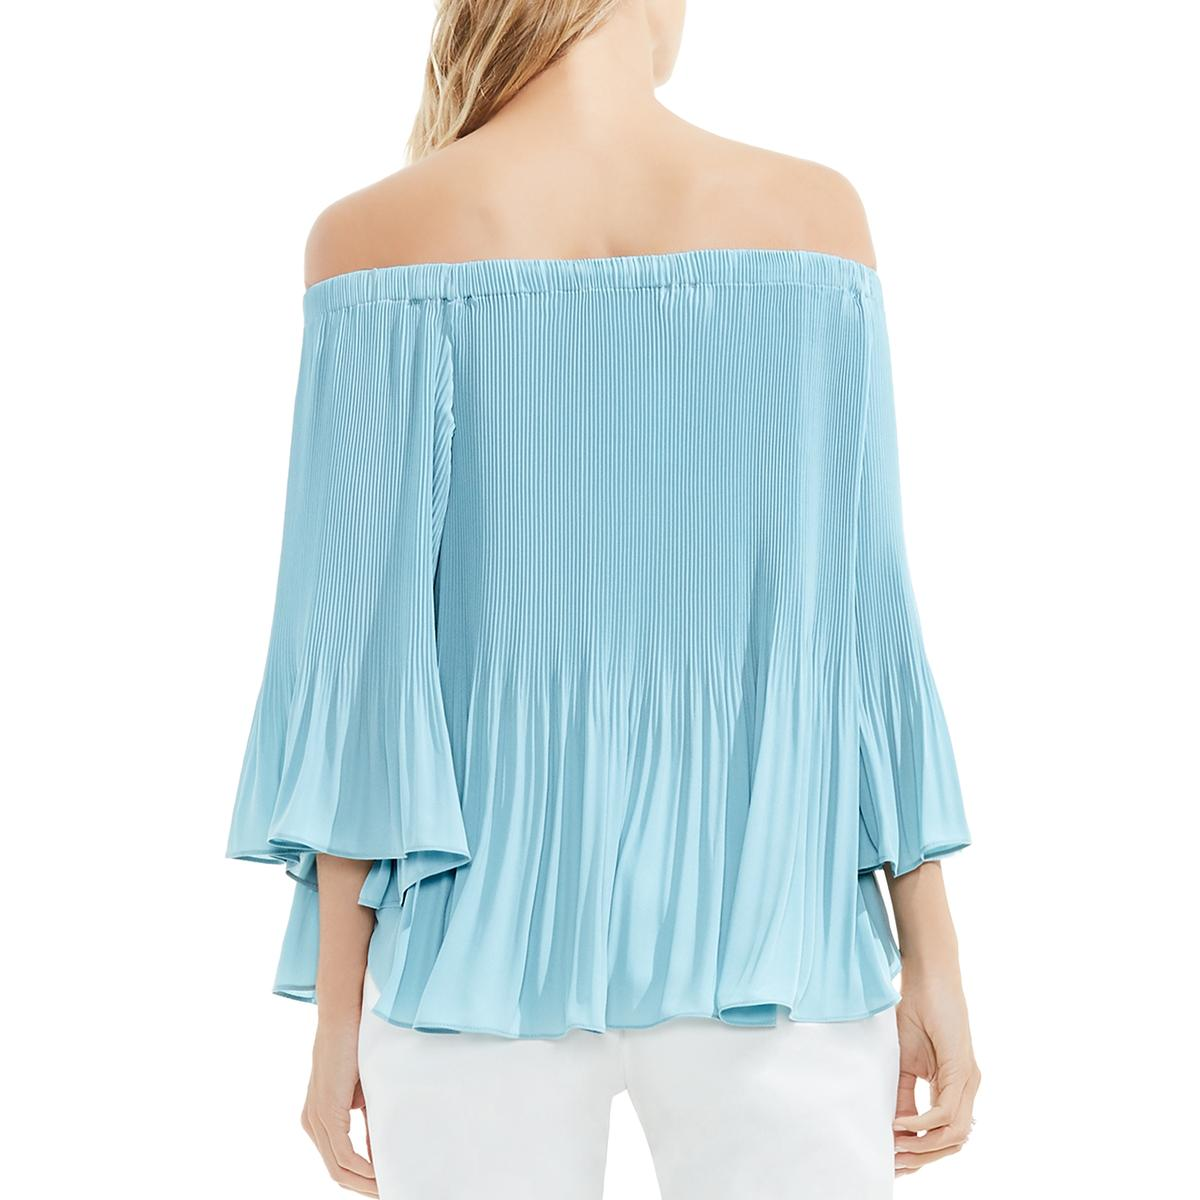 ab00a503aab7ed Vince Camuto Womens Crepe Pleated Off-The-Shoulder Blouse Top BHFO ...